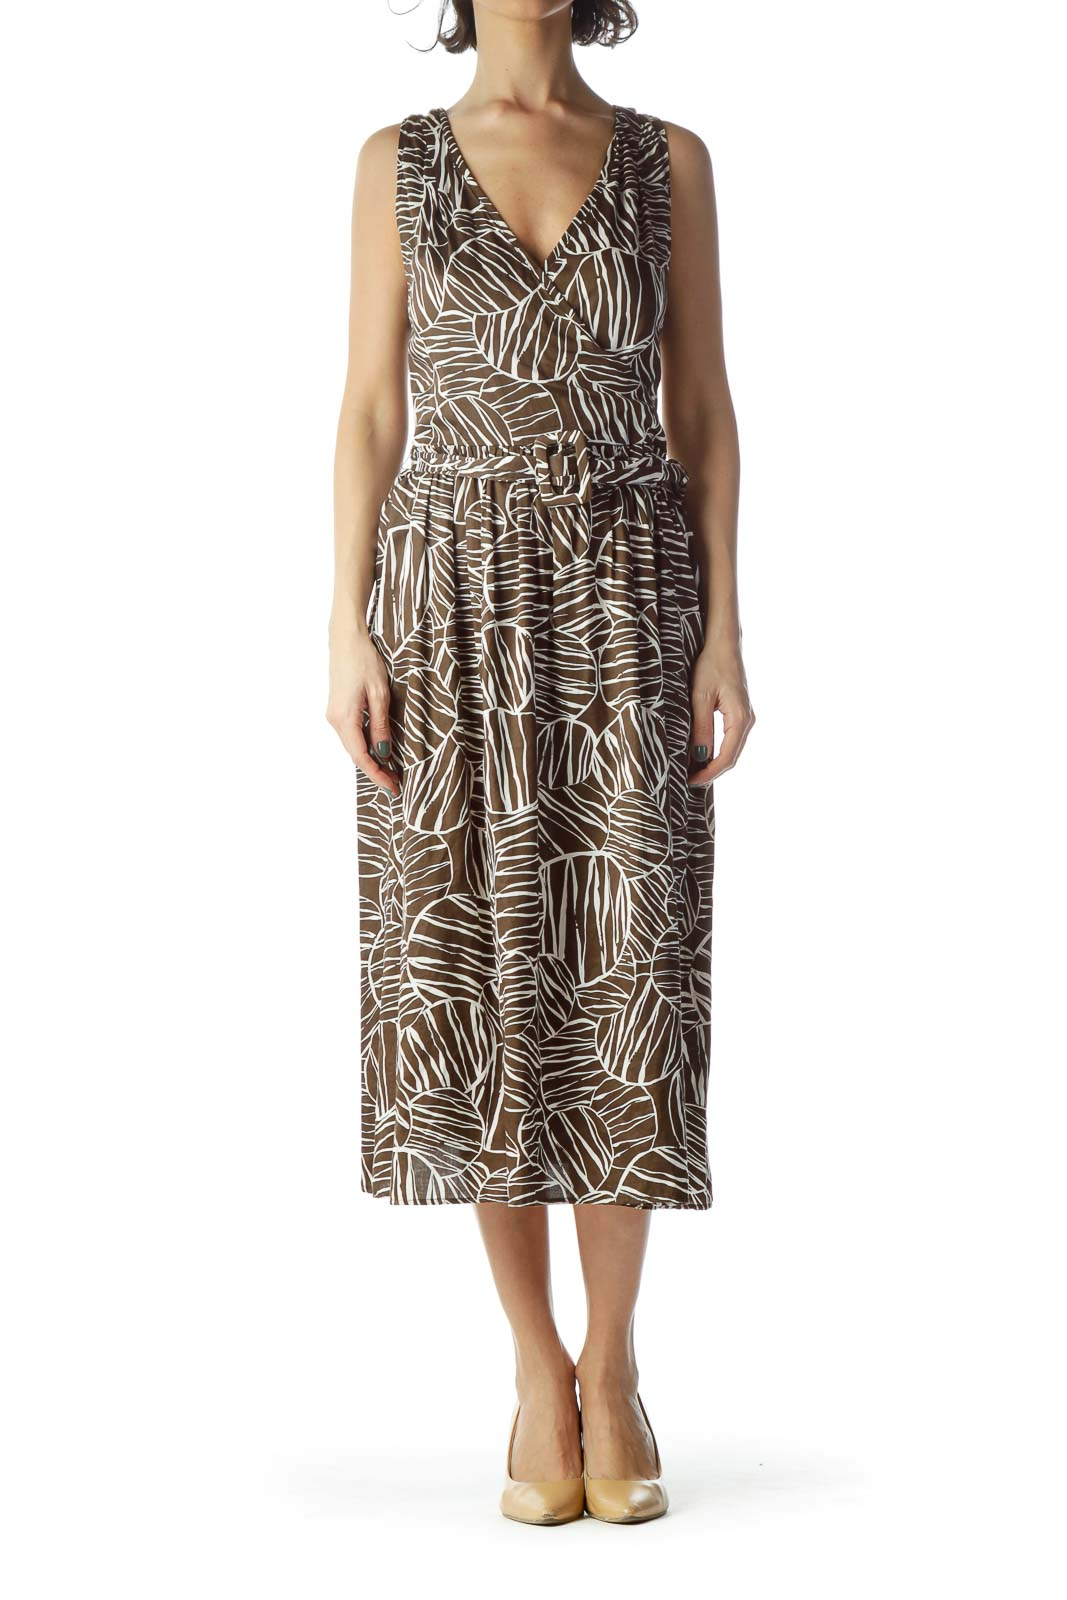 Brown Cream Printed 100% Cotton Belted Dress Front